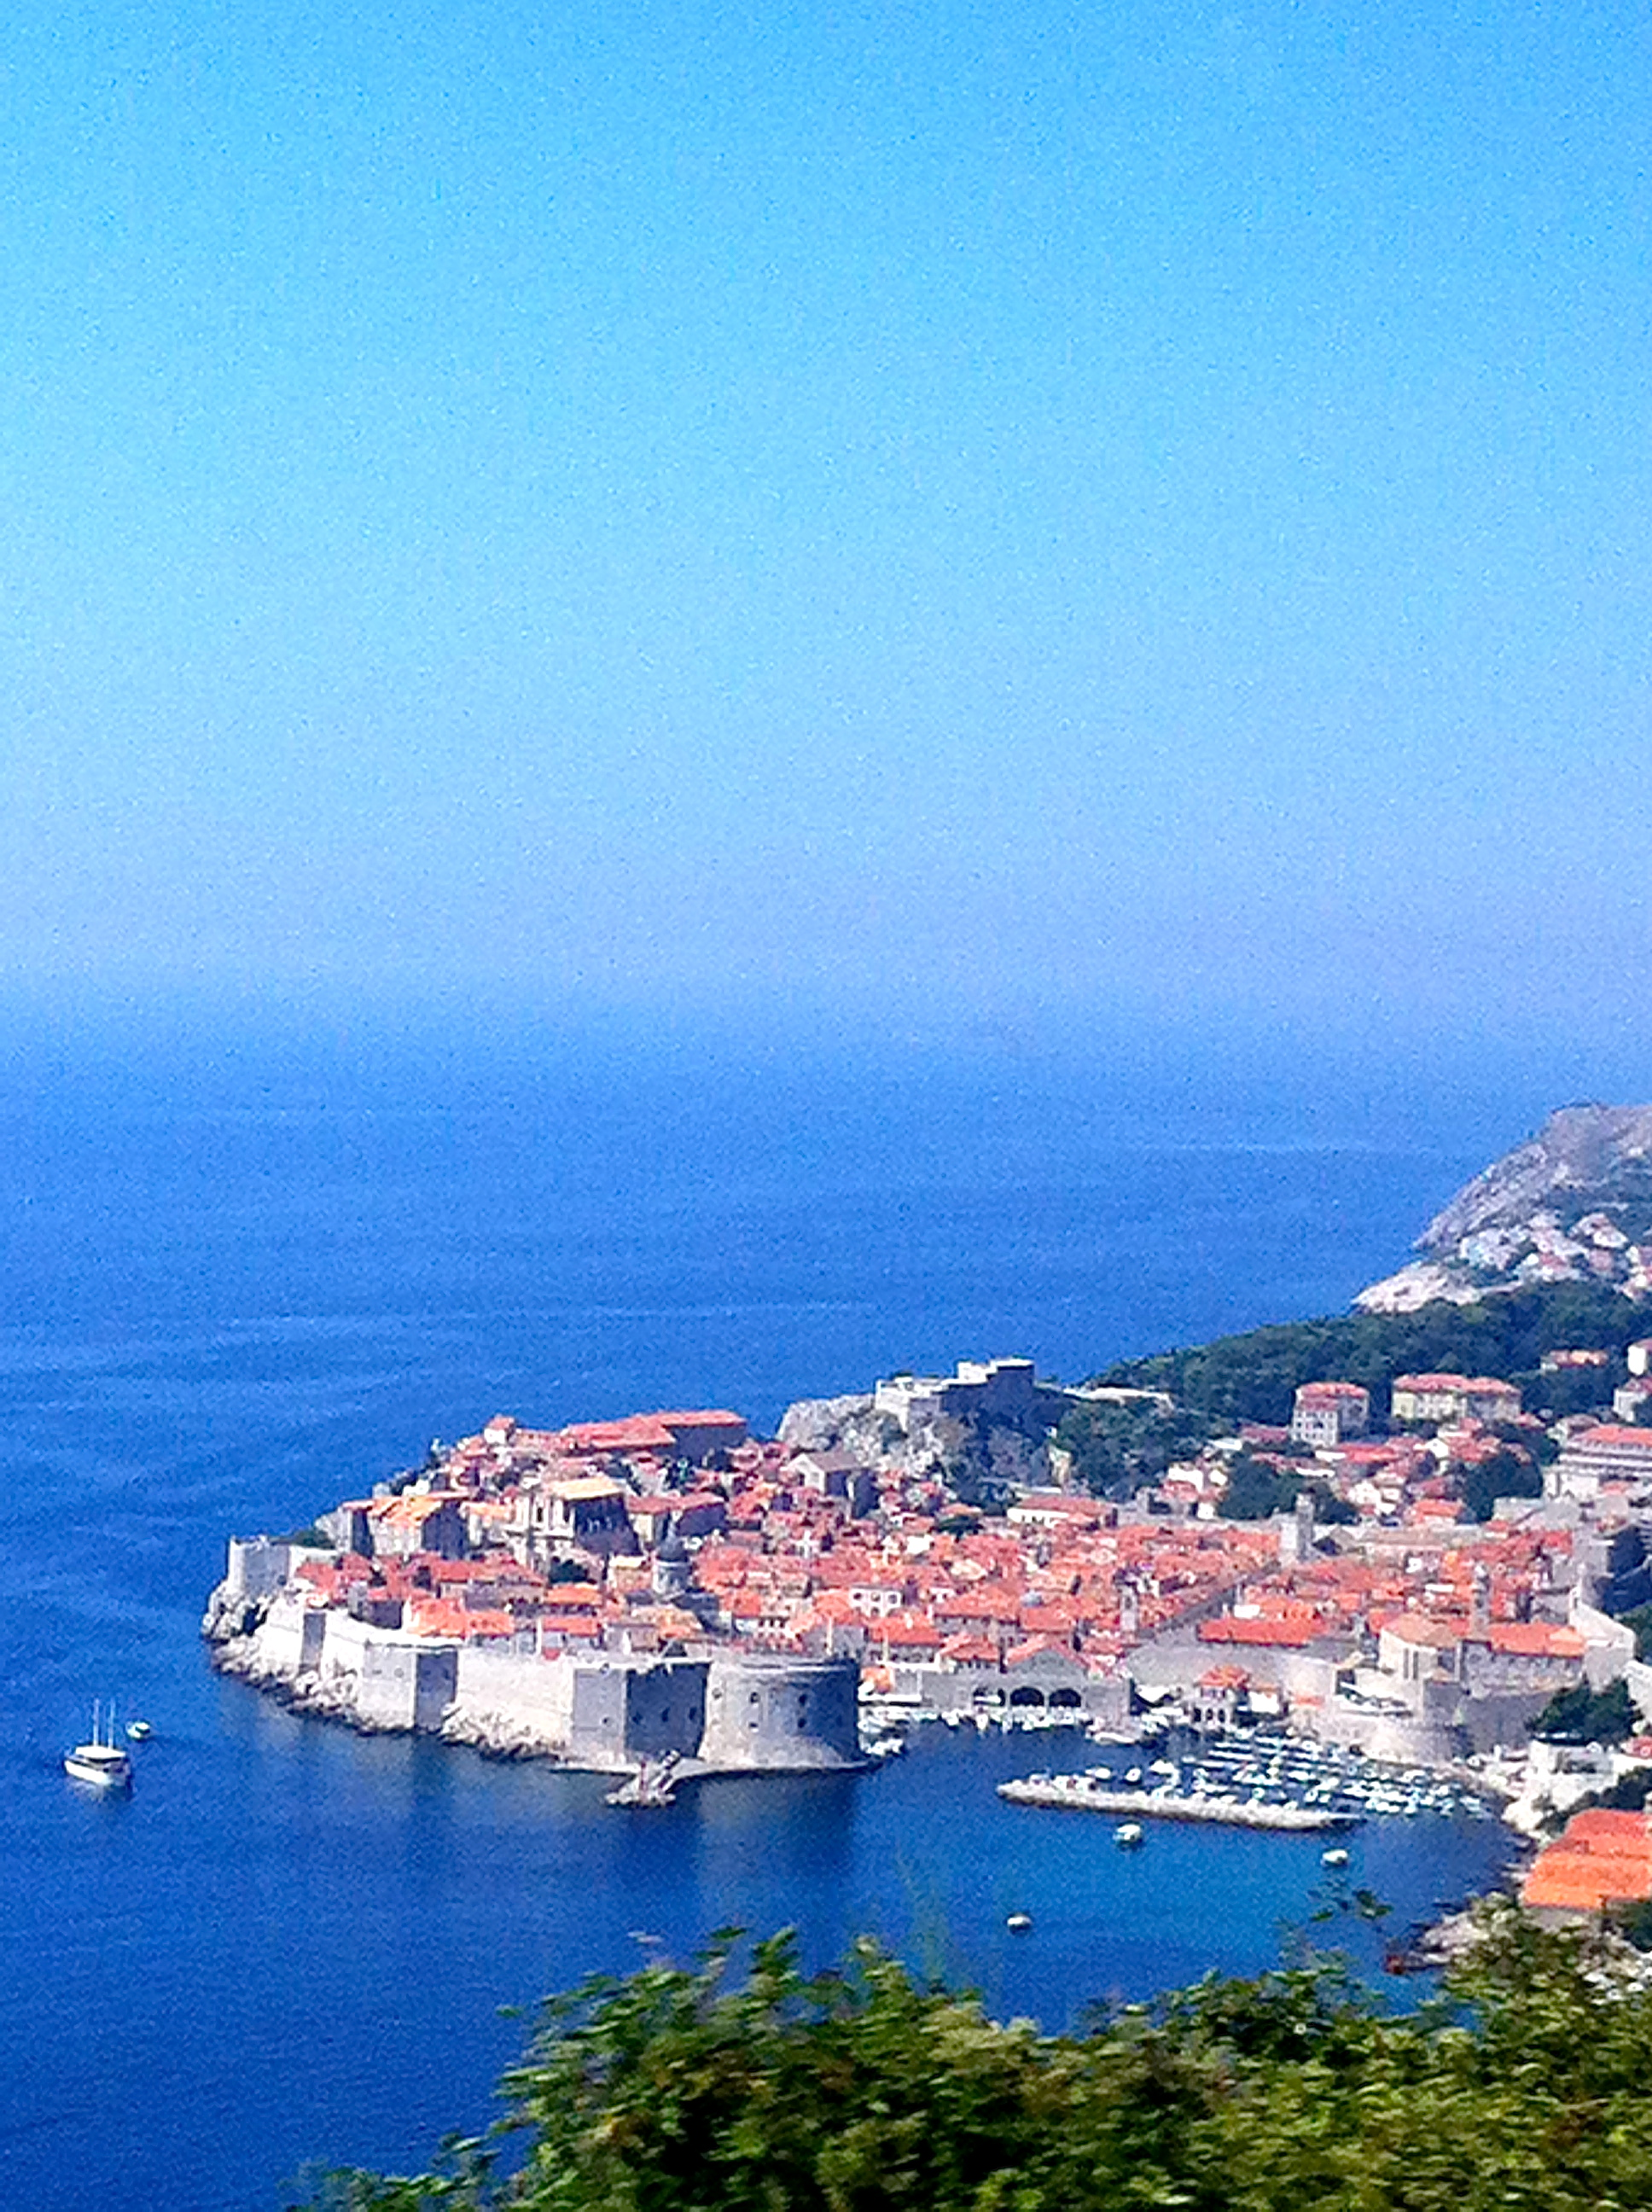 view of the old city of Dubrovnik from the bus